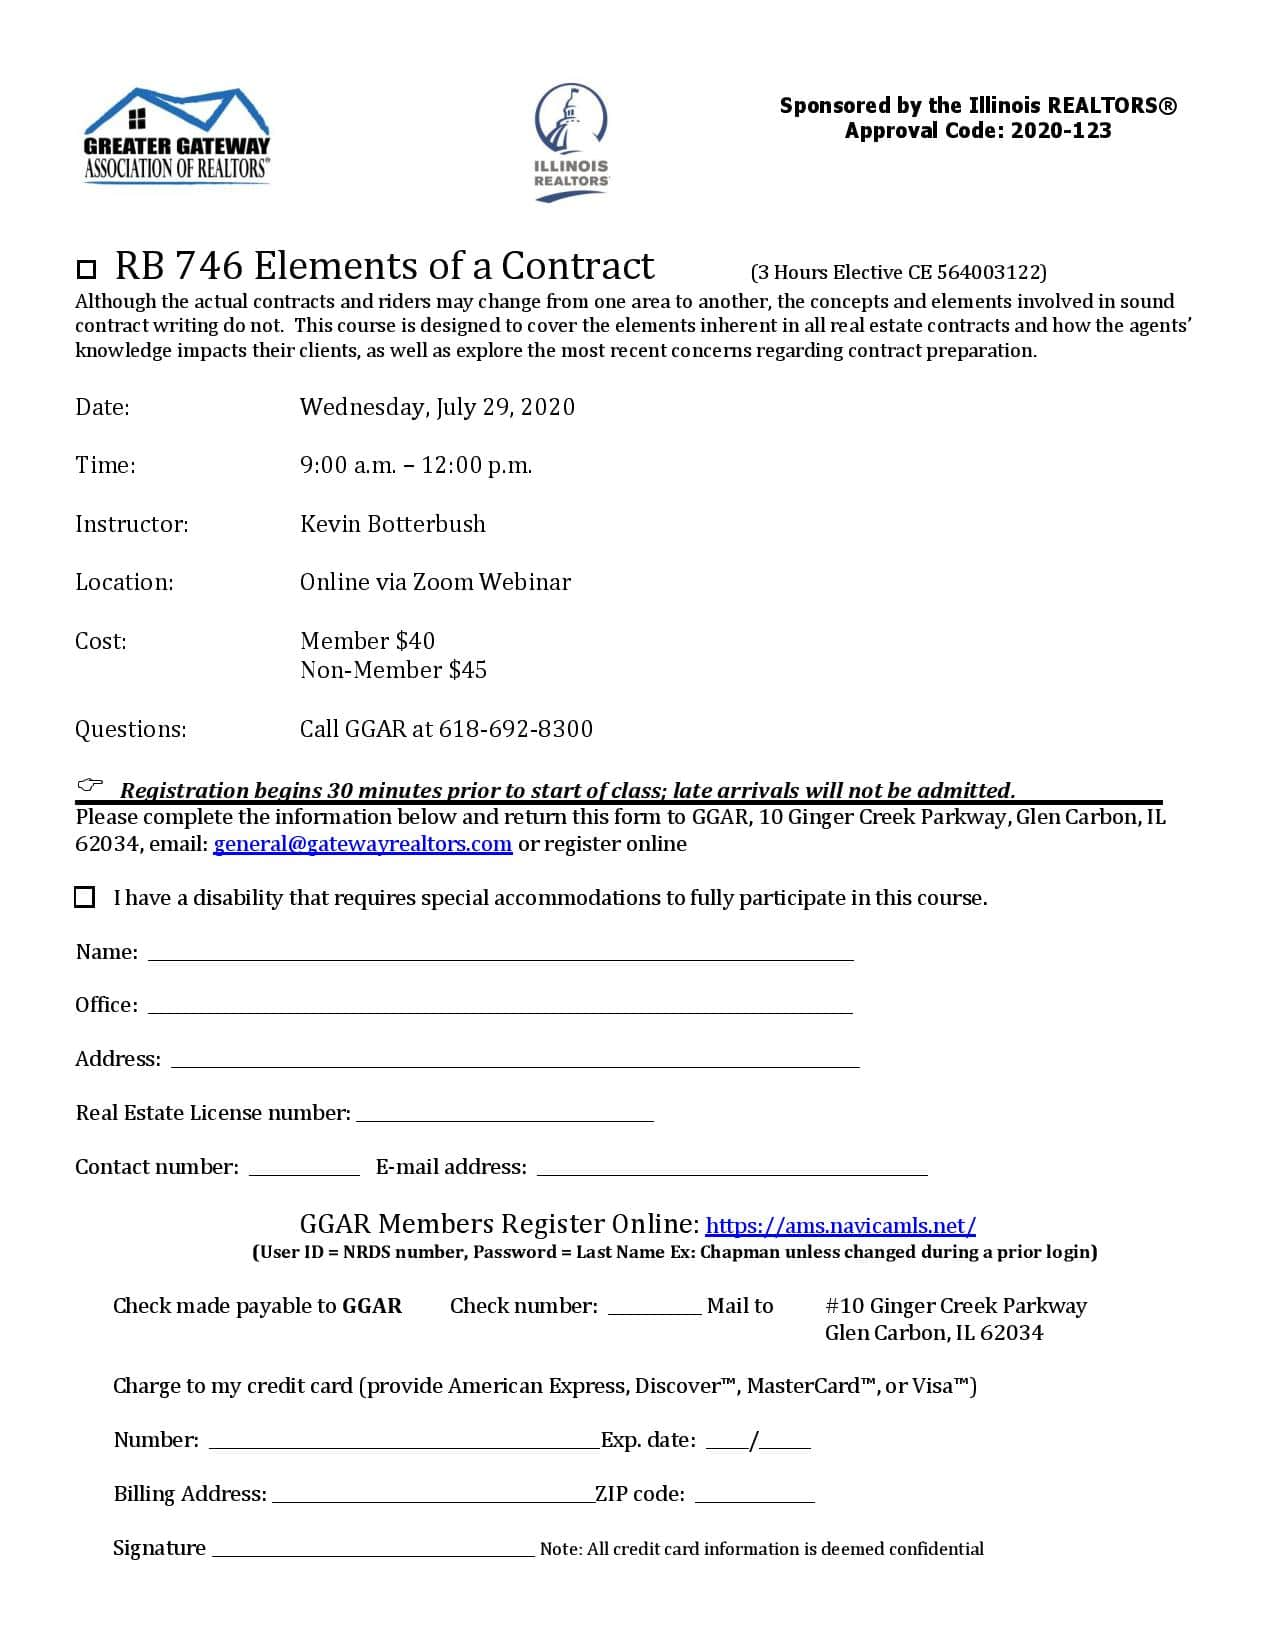 RB 746 Elements of a Contract